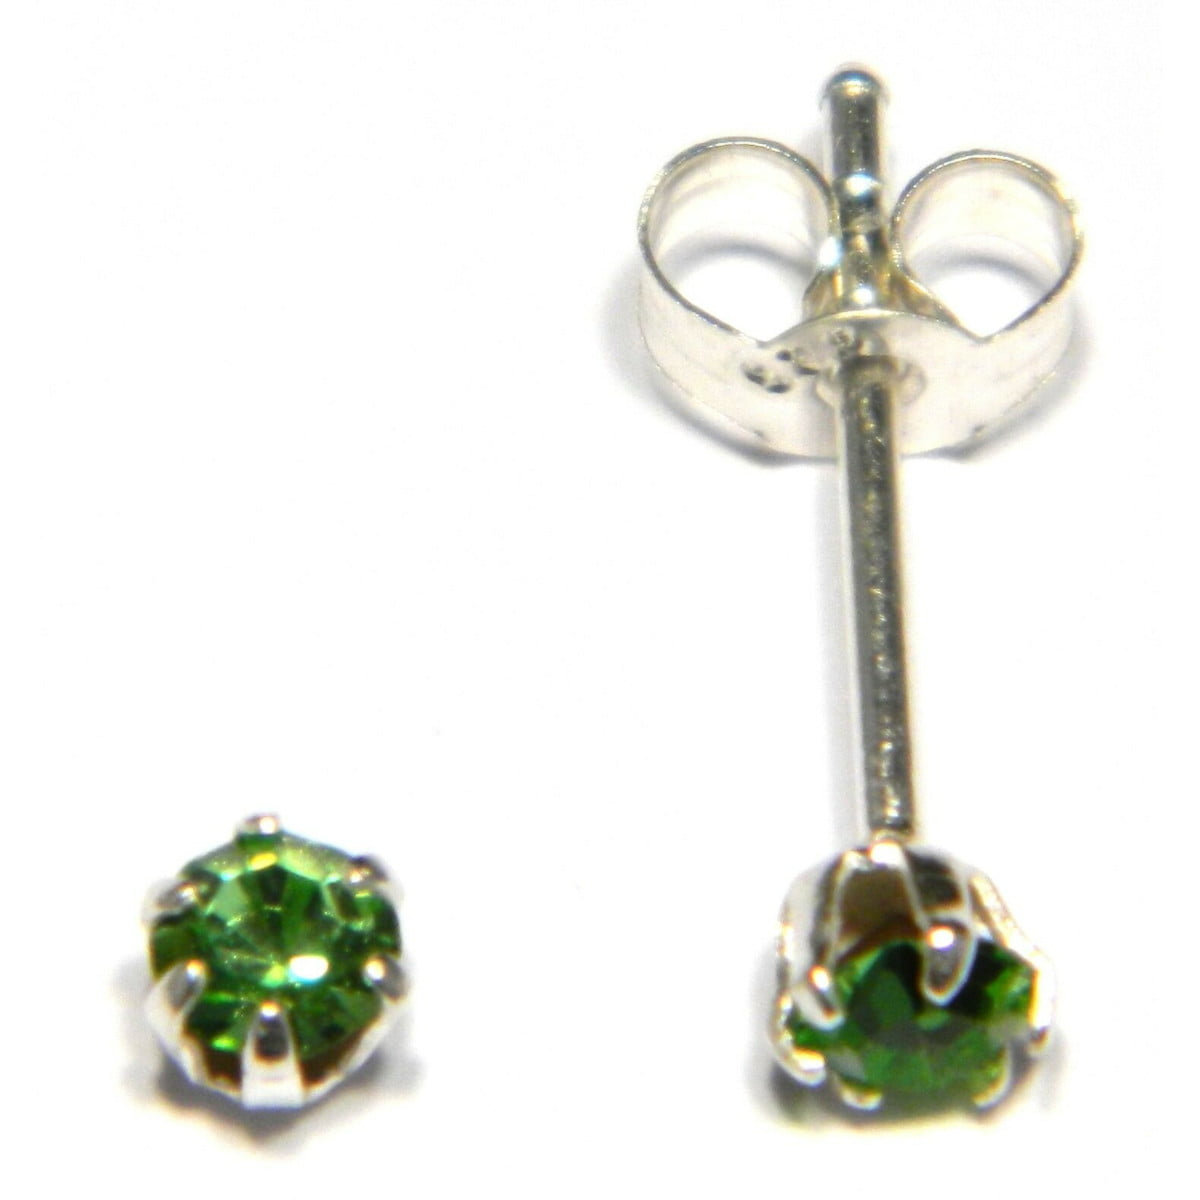 3 mm green coloured crystal stud round solitaire earrings in sterling silver